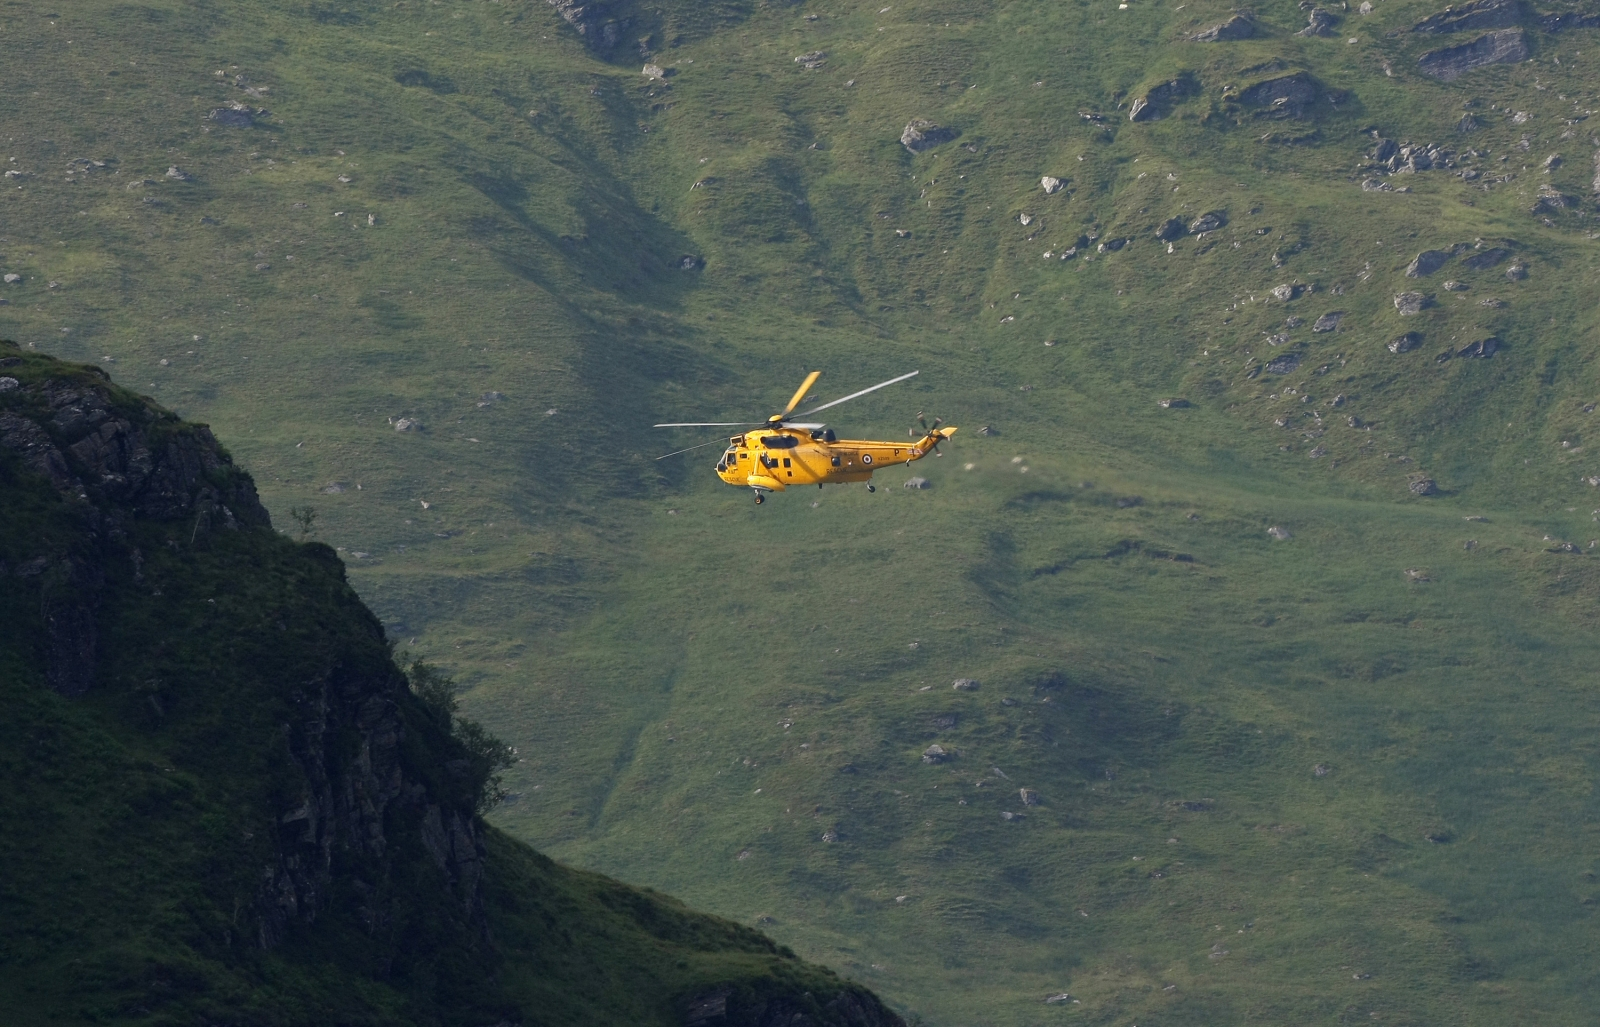 Plane crash rescue in Scotland